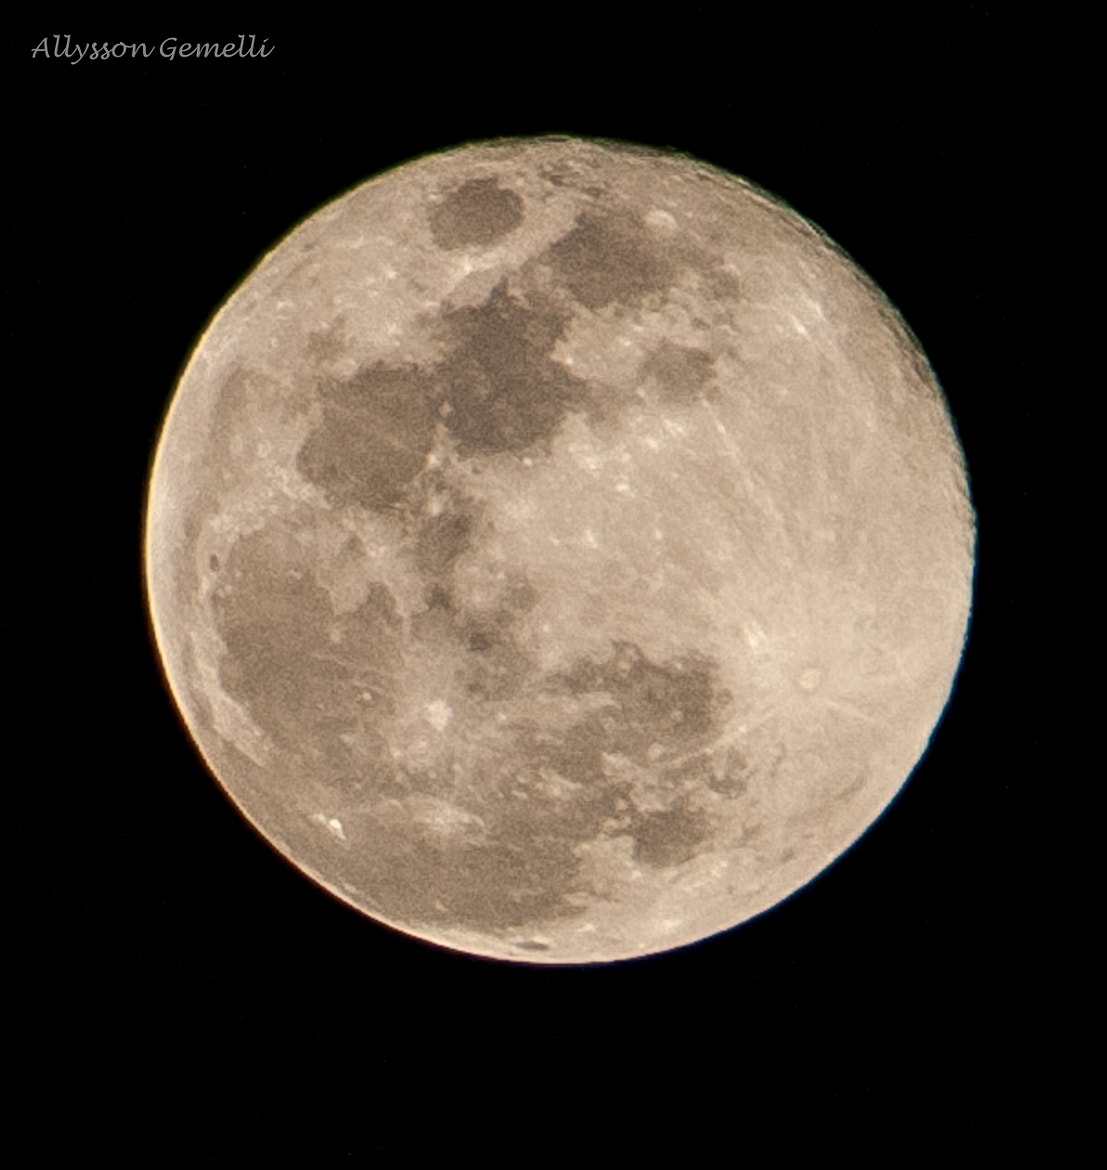 Photograph Full moon at September by Allysson Gemelli on 500px